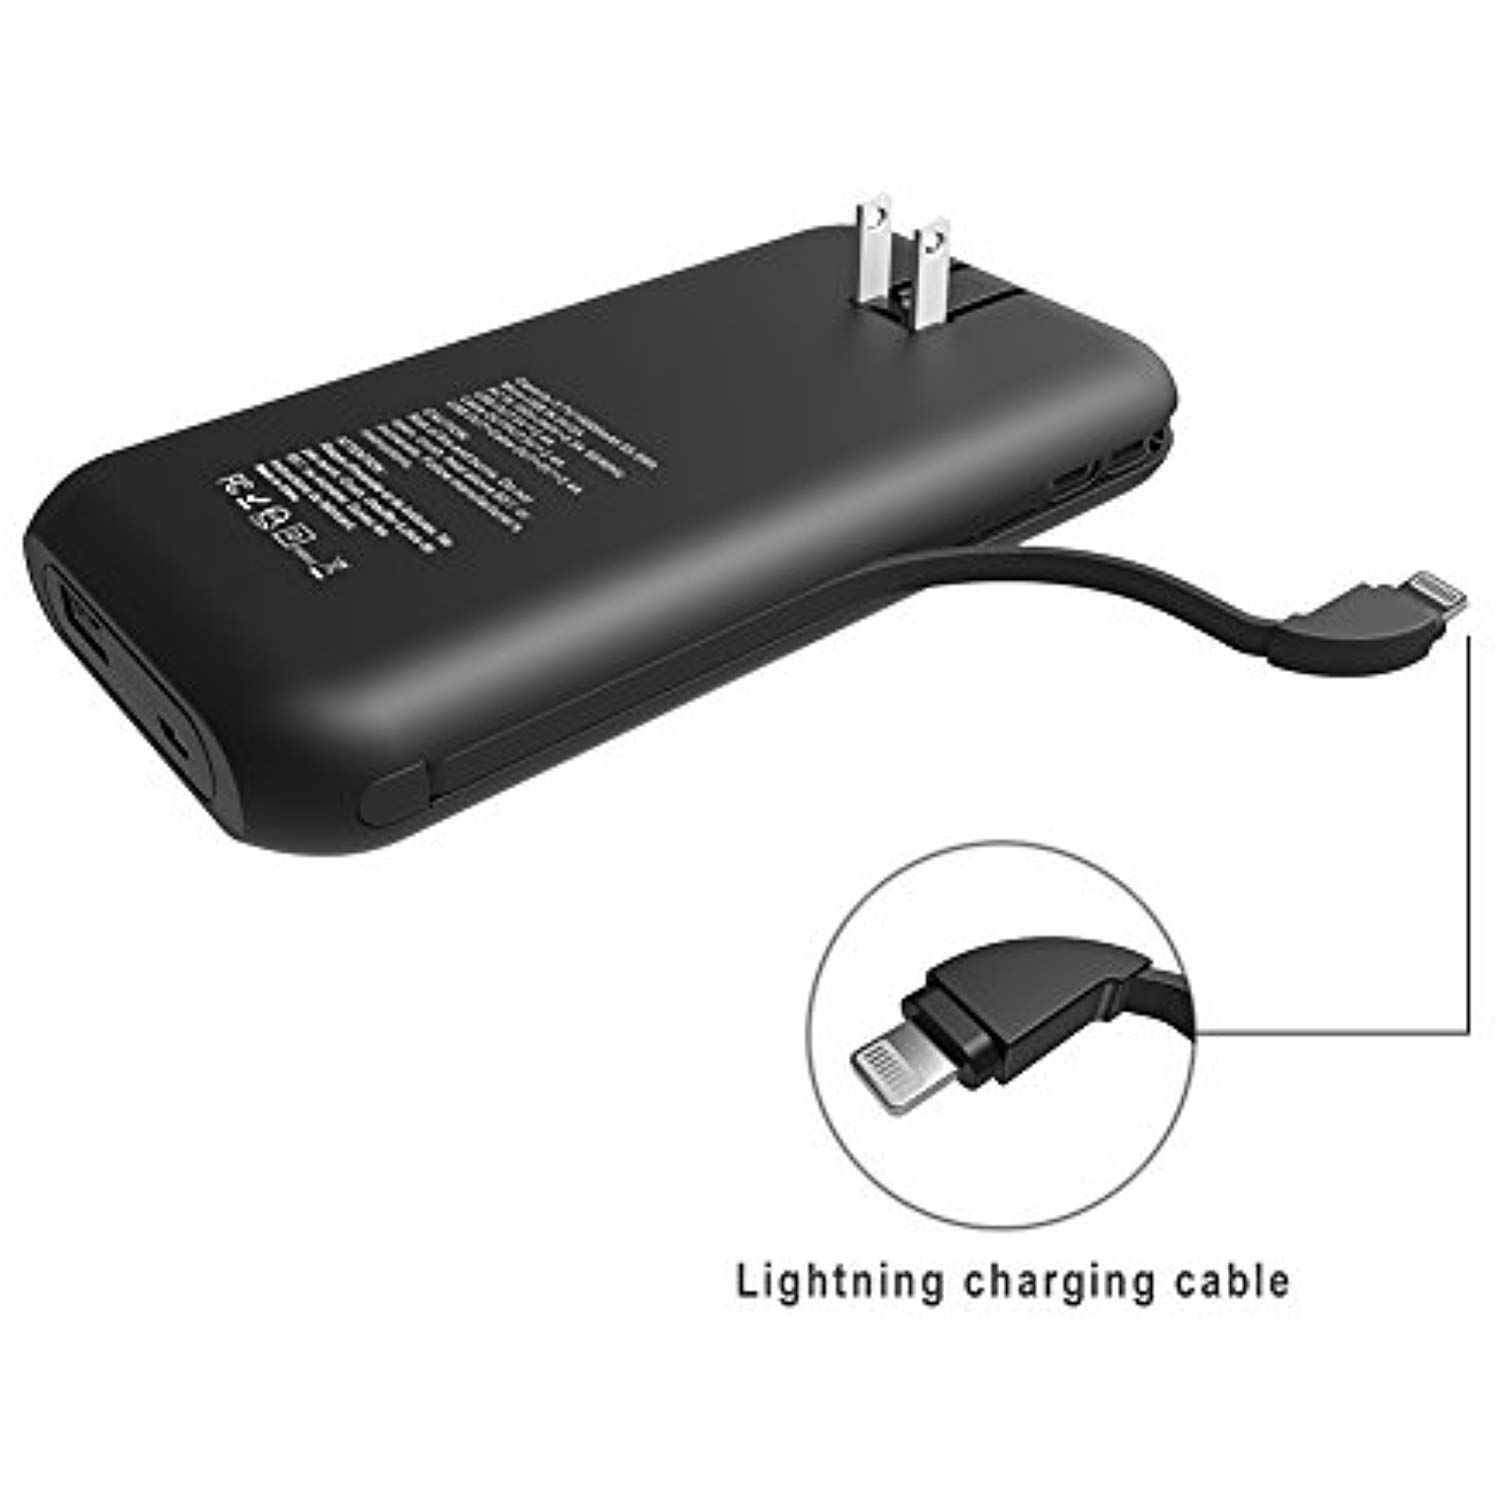 Heloideo 15000mah Iphone Lightning Cable Power Bank With Ac Plug Fast Charging Portable Charger With Built In Lightin Iphone Lightning Cable Ac Plug Powerbank